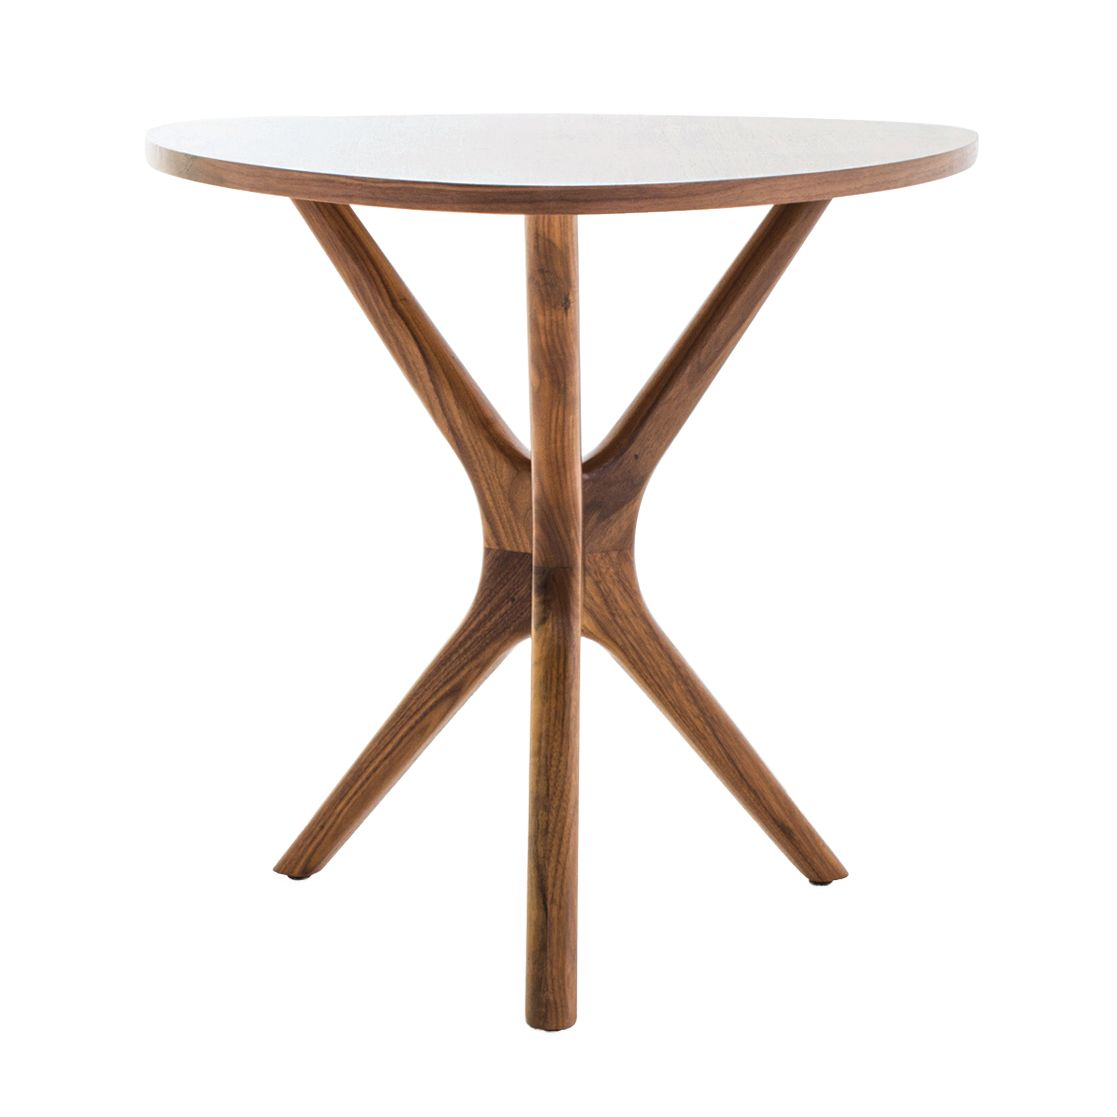 Tolson walnut end table by Joybird